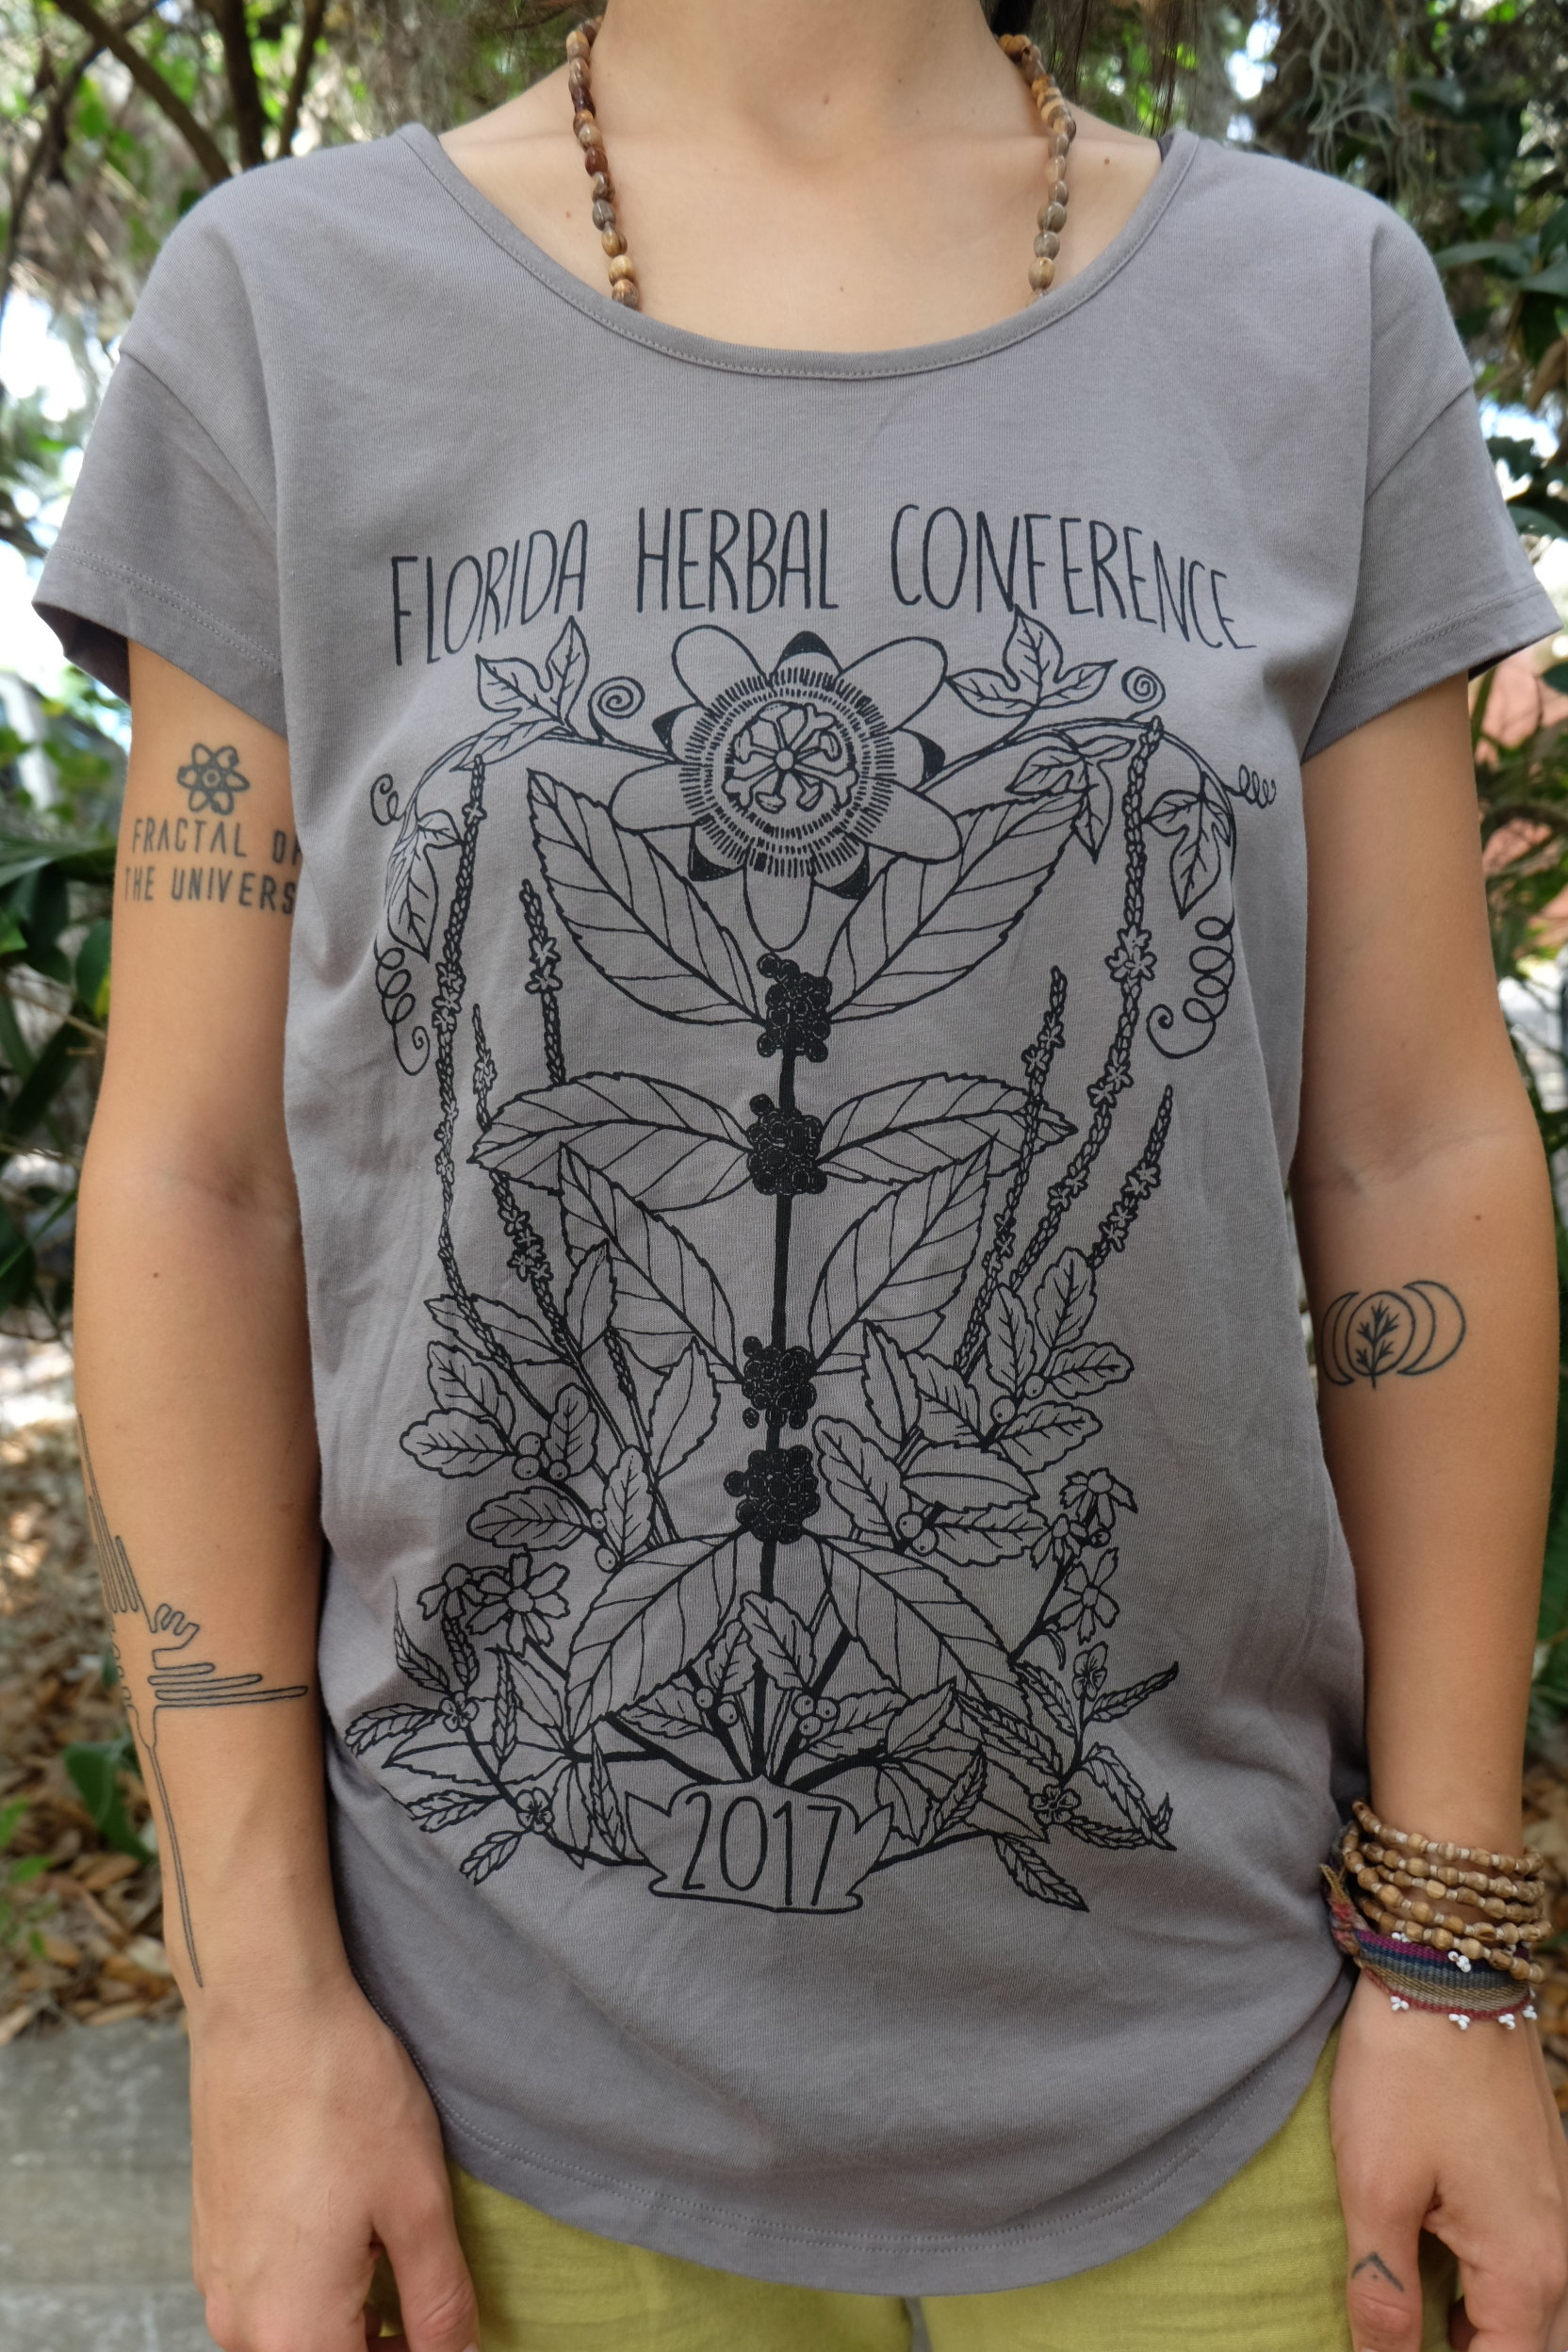 2017 Florida Herbal Conference Short Sleeved Tee